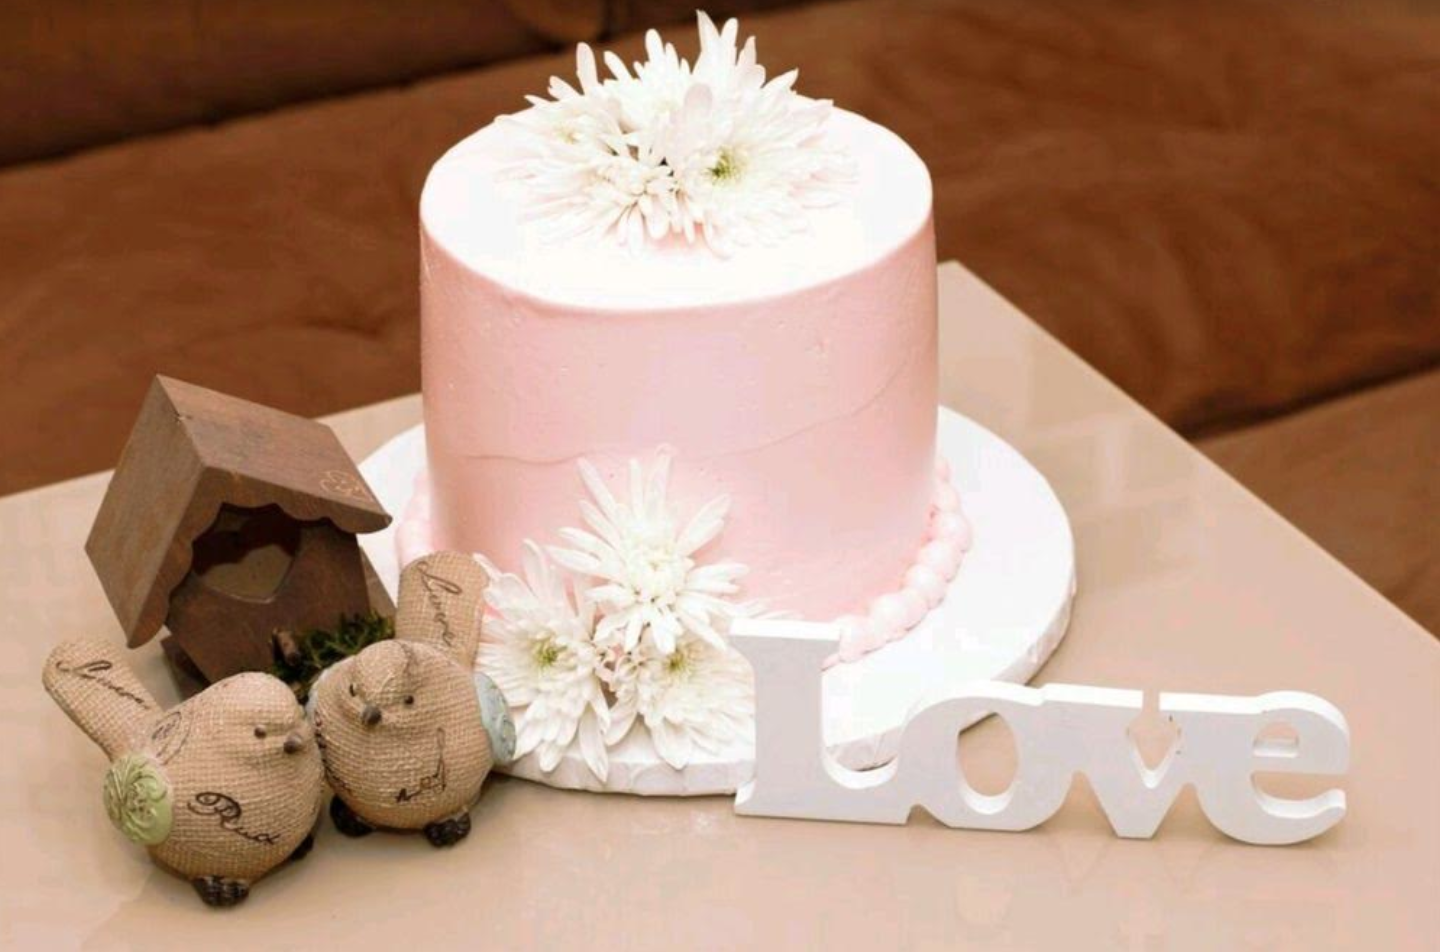 You Can Celebrate Intimately With Your Partner Or Involve Friends And Family By Having A Successful Party The Wedding Anniversary Cakes For Are